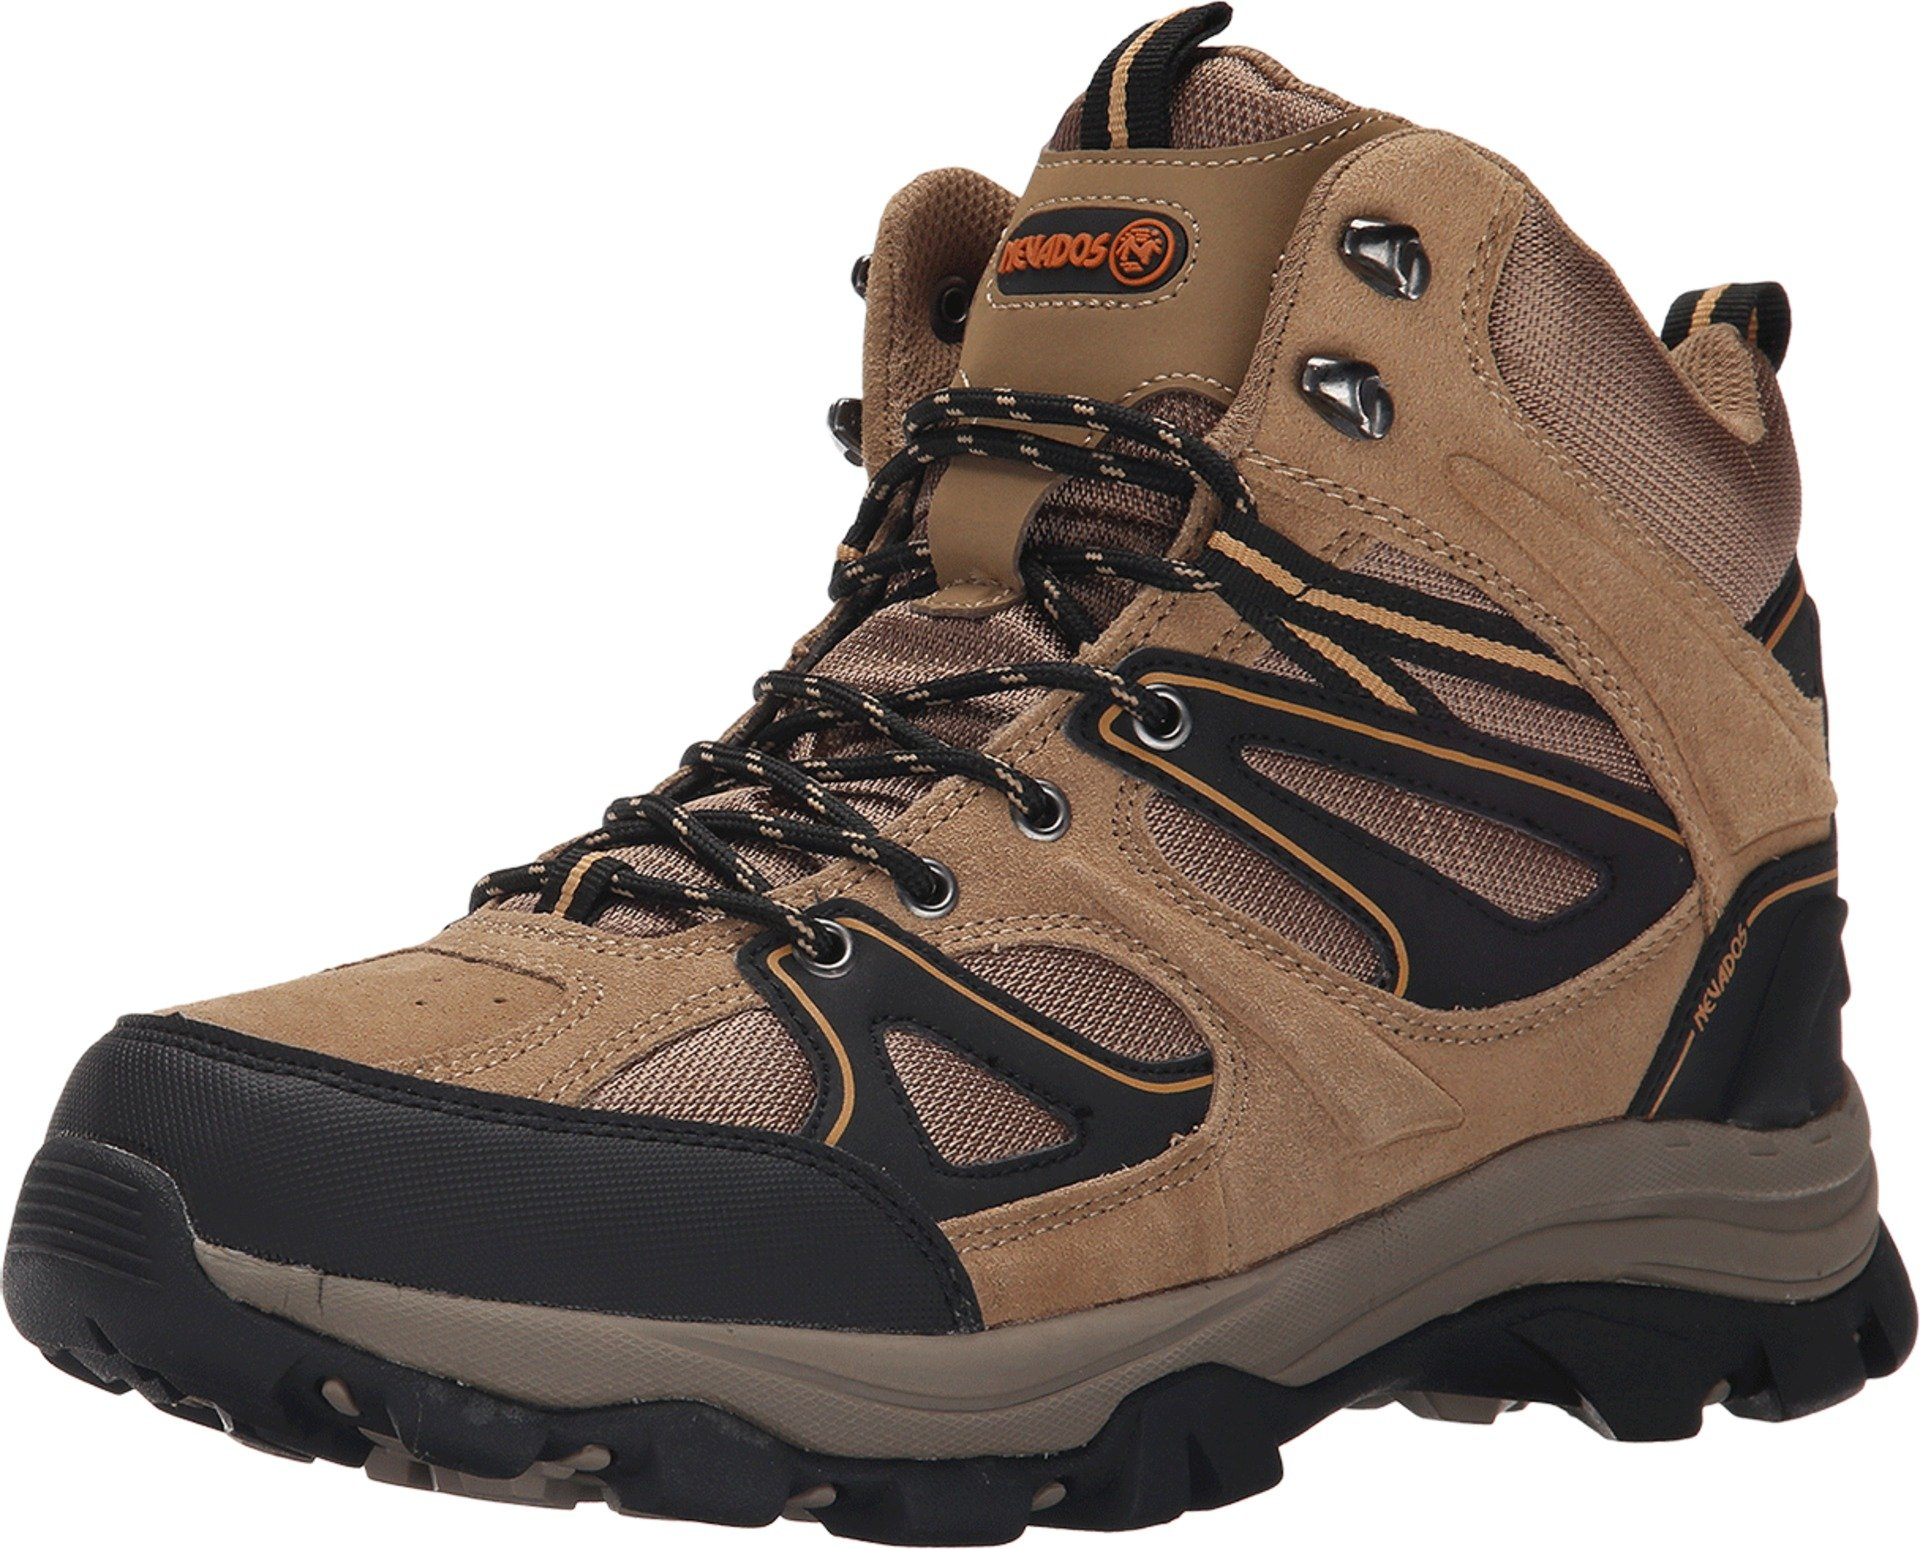 Nevados Men's Talus Hiking Boot, Light Brown/Light Brown/Black, 9 M US